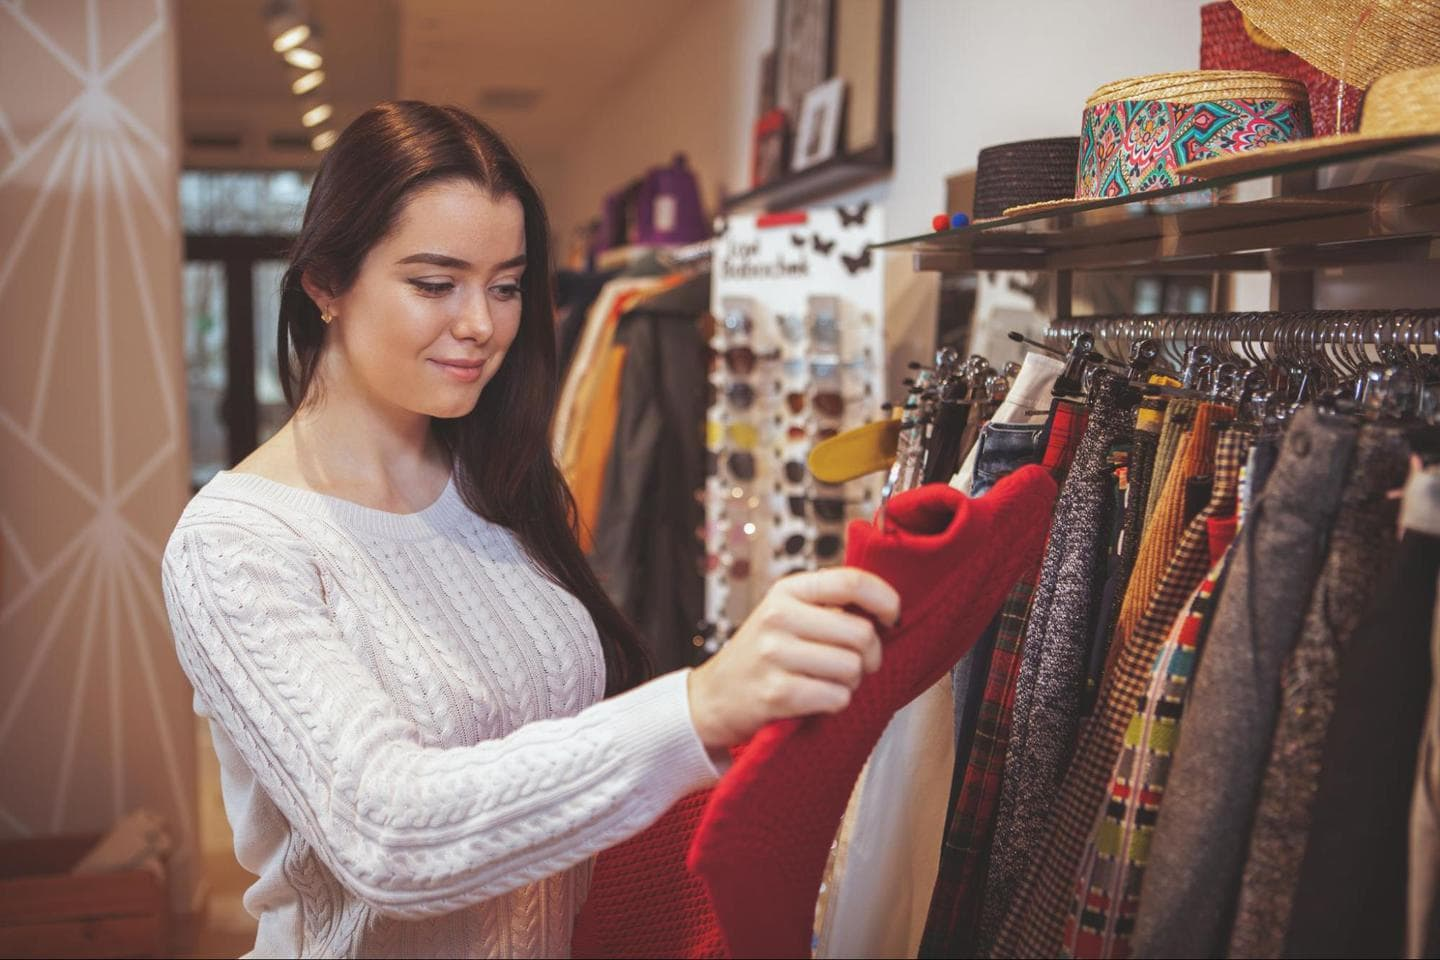 fashion merchandising: Smiling woman examining a sweater at a store